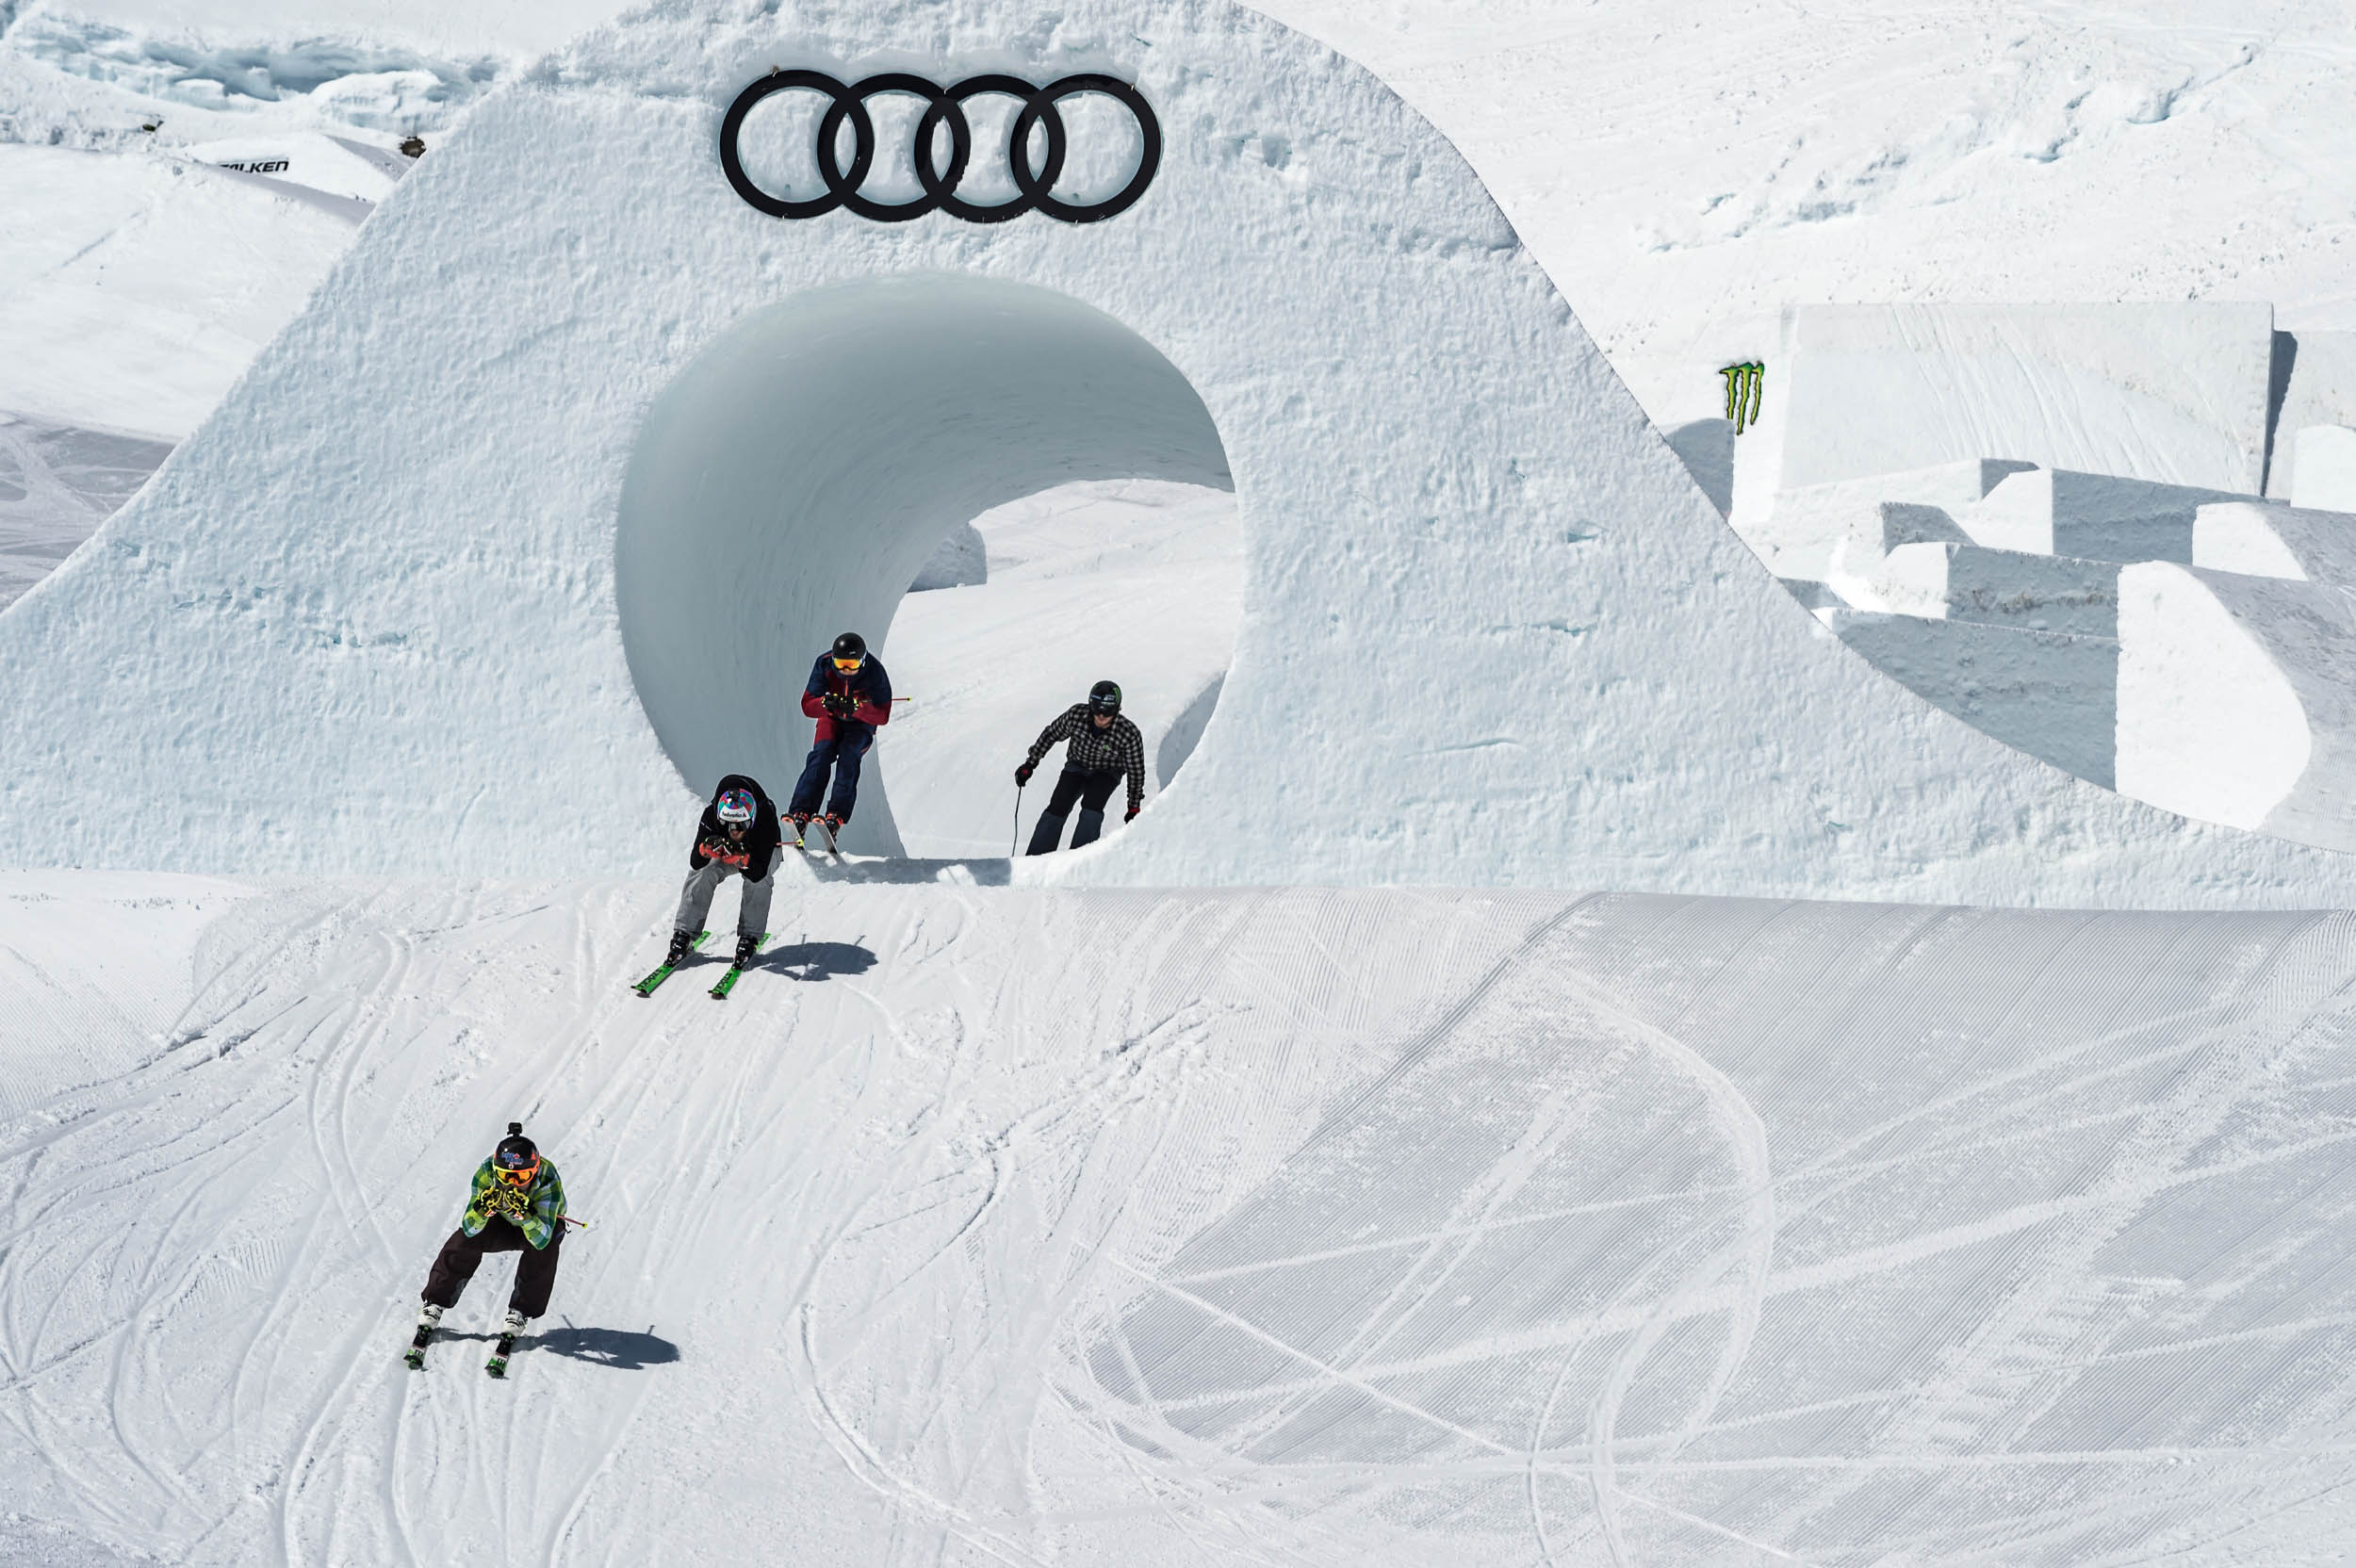 Brady Leman winning the Skier SlopeX finals at The Audi Nines